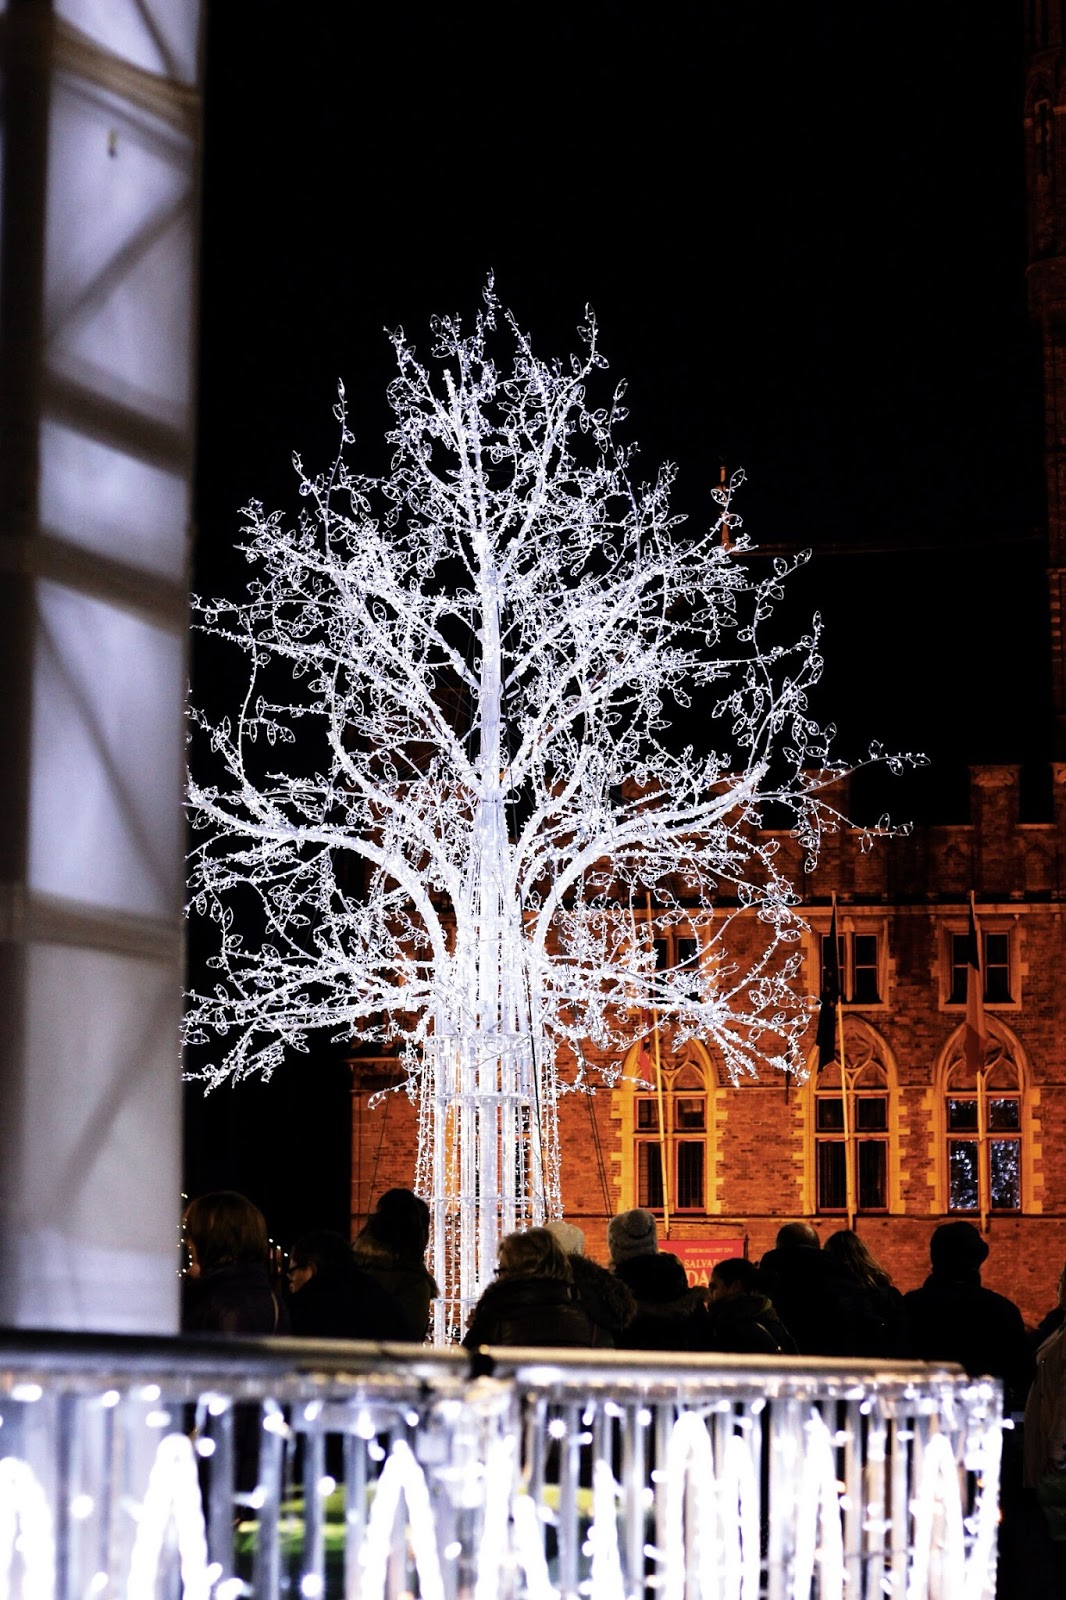 Bruges ice rink illuminated Christmas tree